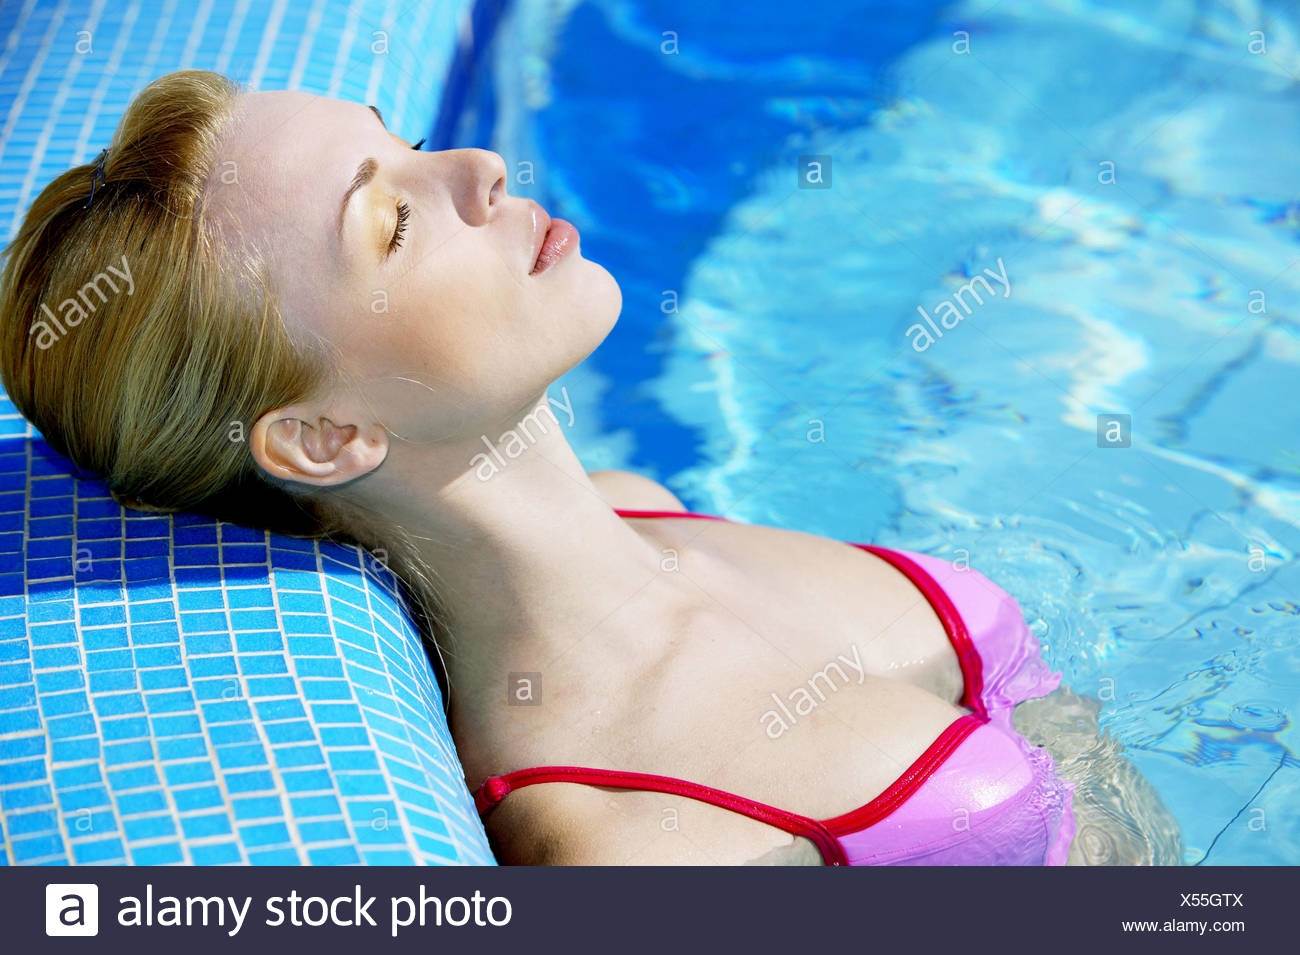 15 Page 10   Schwimmen Bikini High Resolution Stock Photography and ...